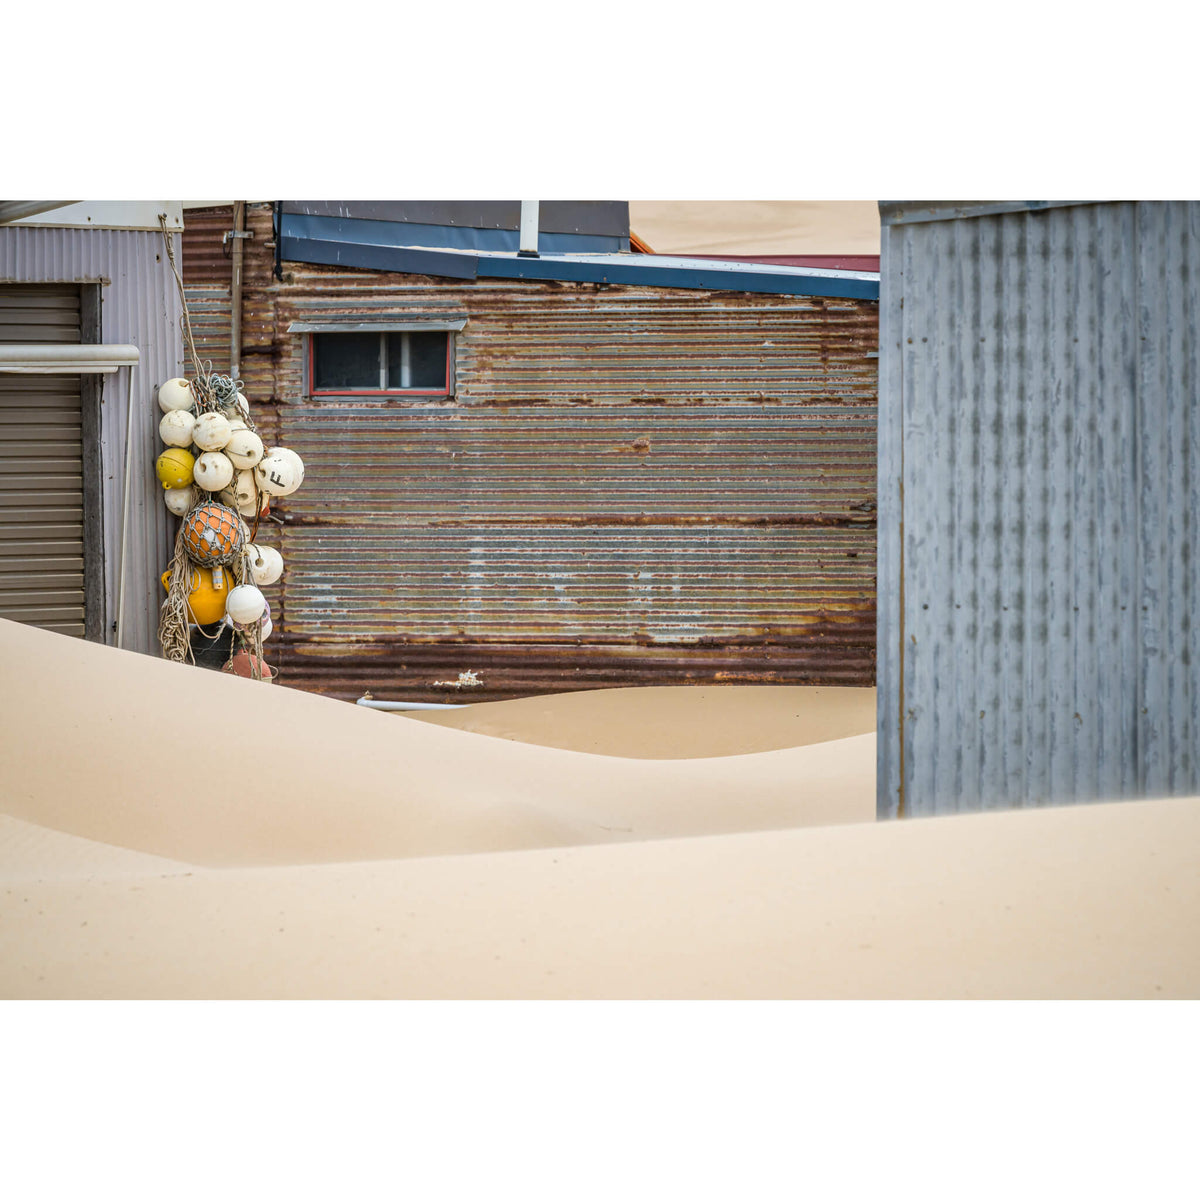 The Alleyway | Tin City Fine Art Print - Lost Collective Shop